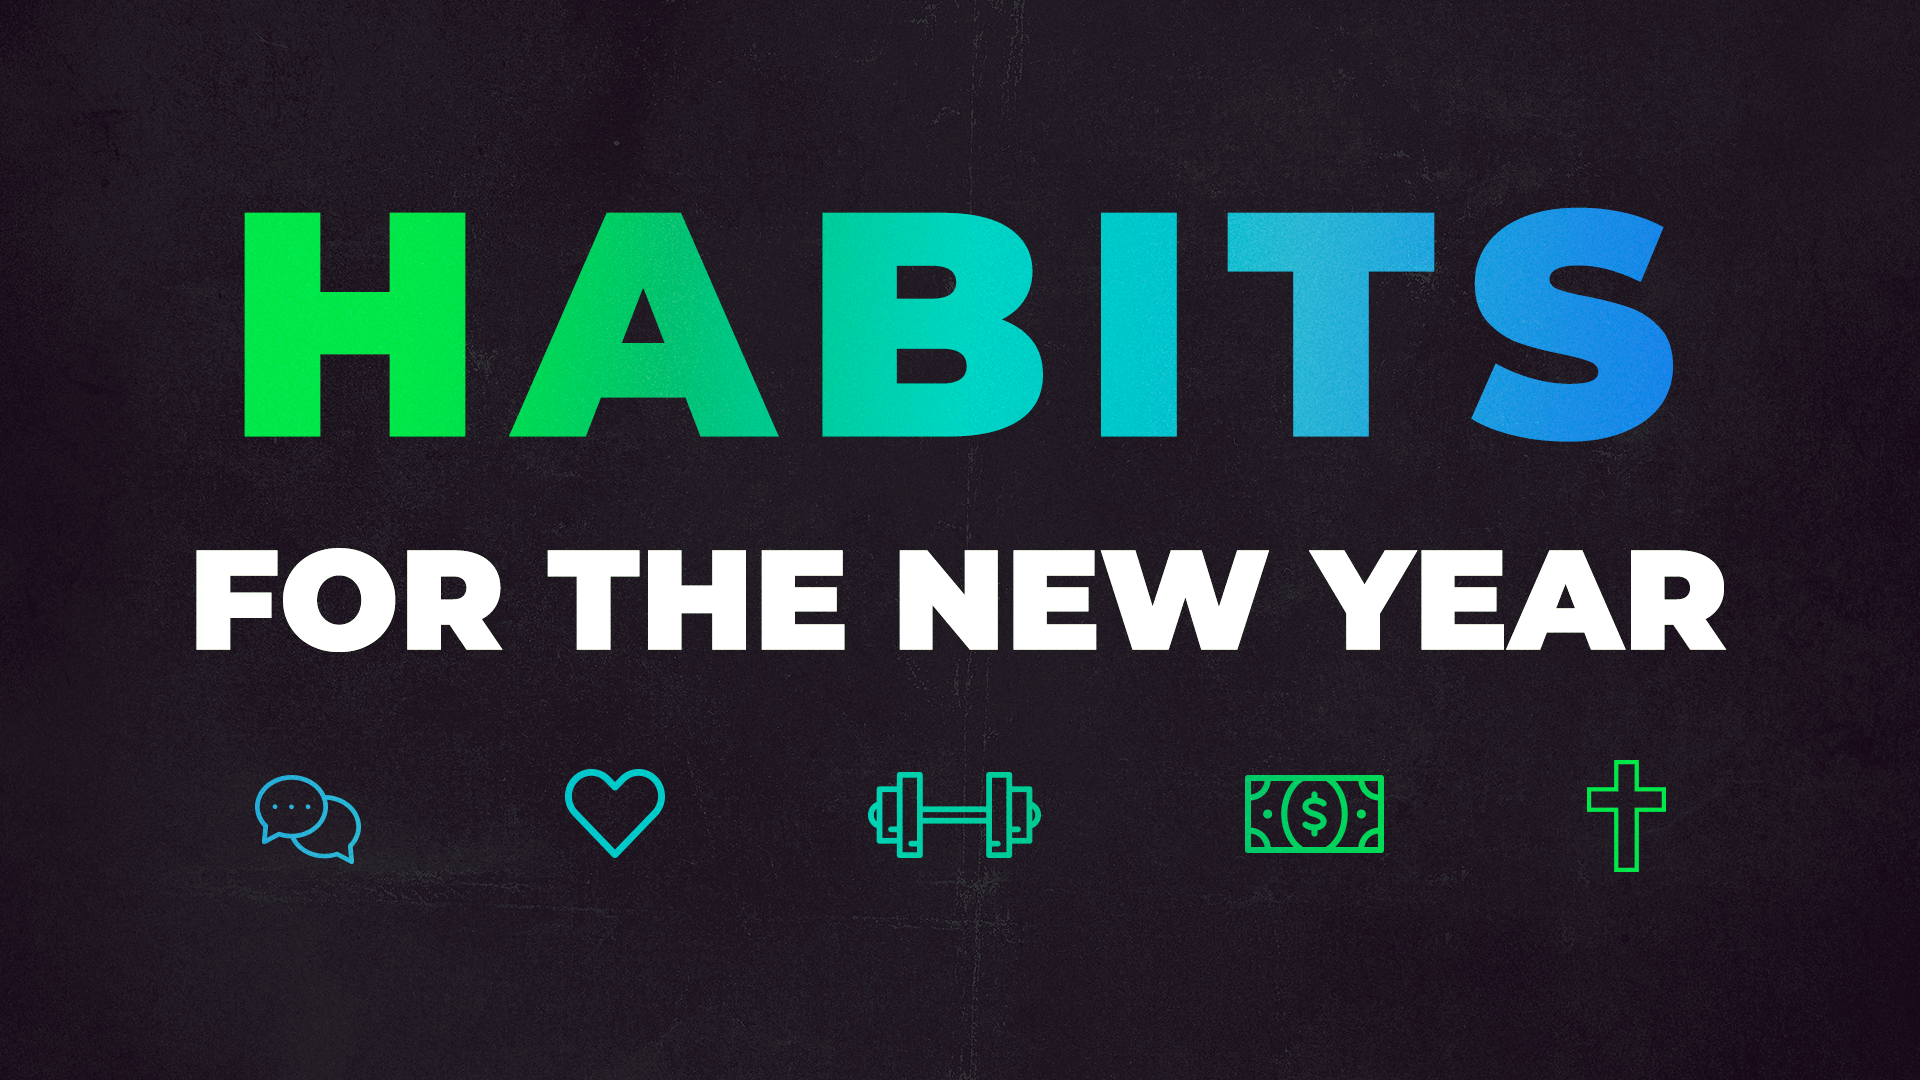 Habits For the New Year